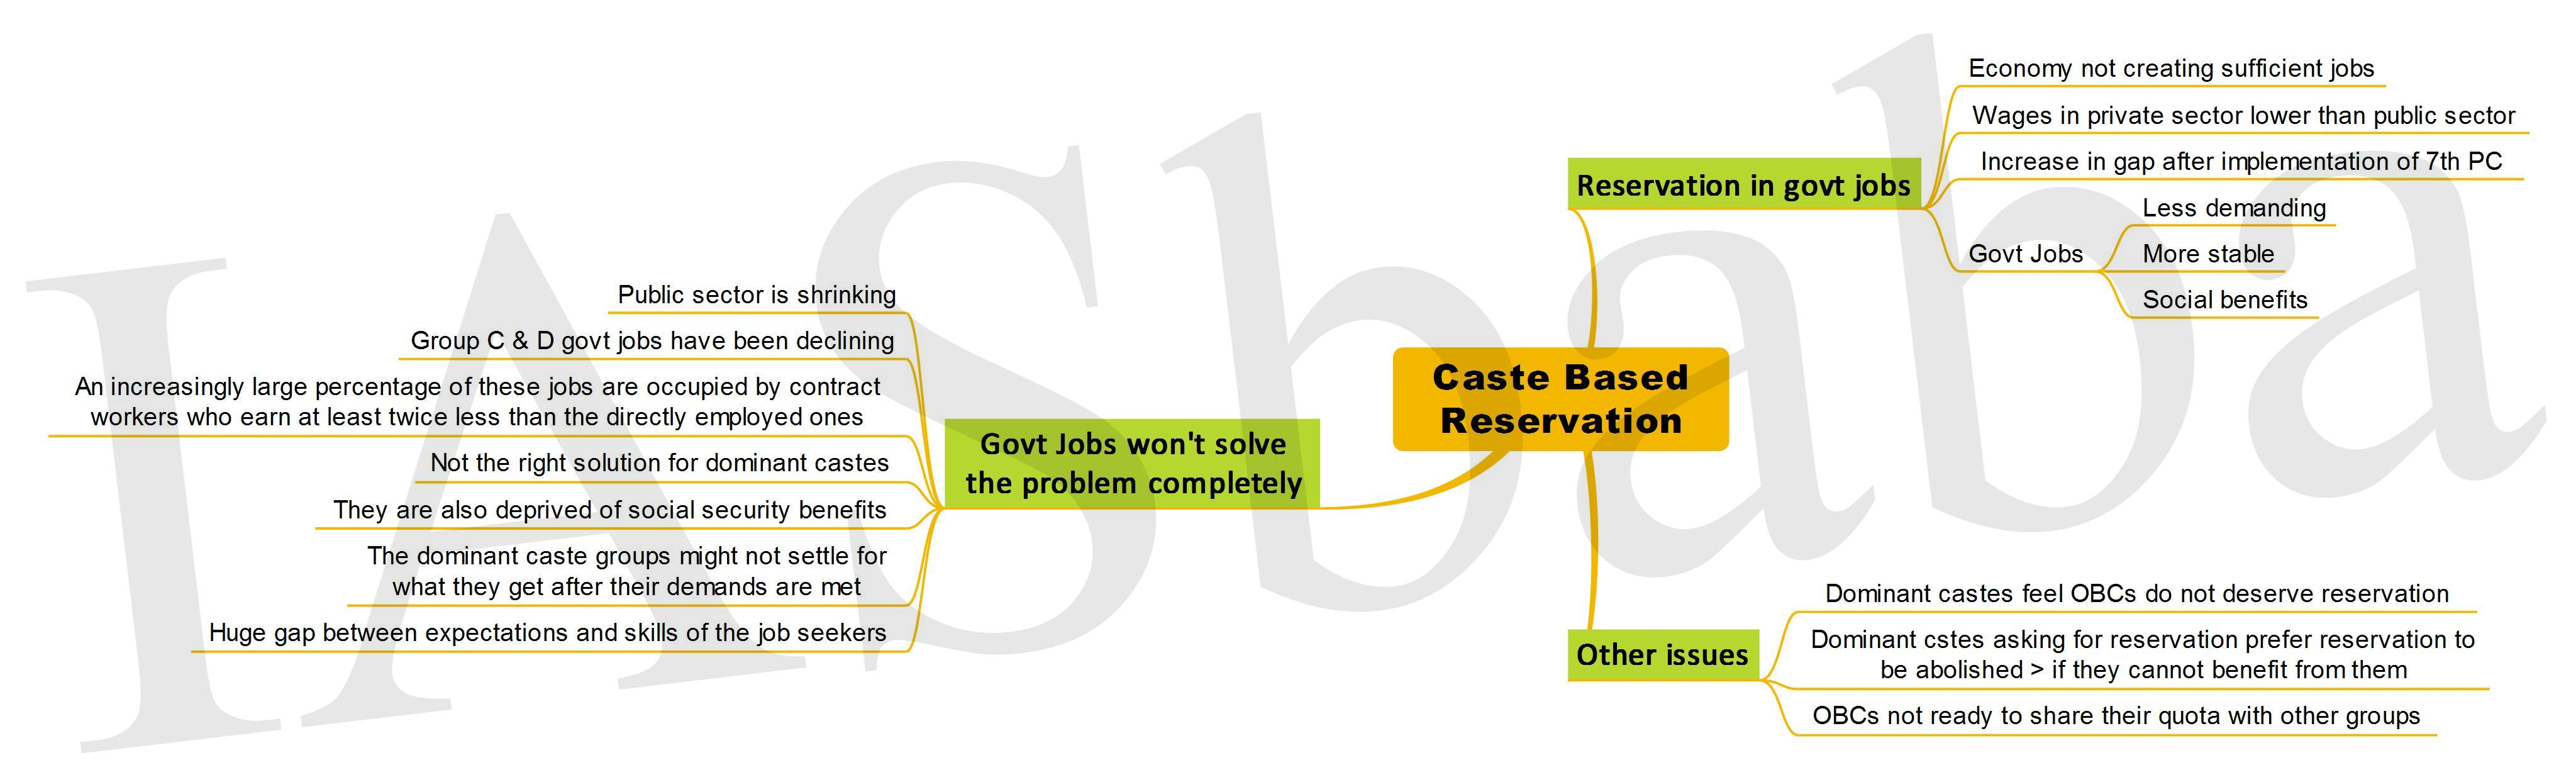 caste reservation These reservations or quotas were granted to groups on the basis of their ( presumably immutable) caste identities the logic of reservations in.